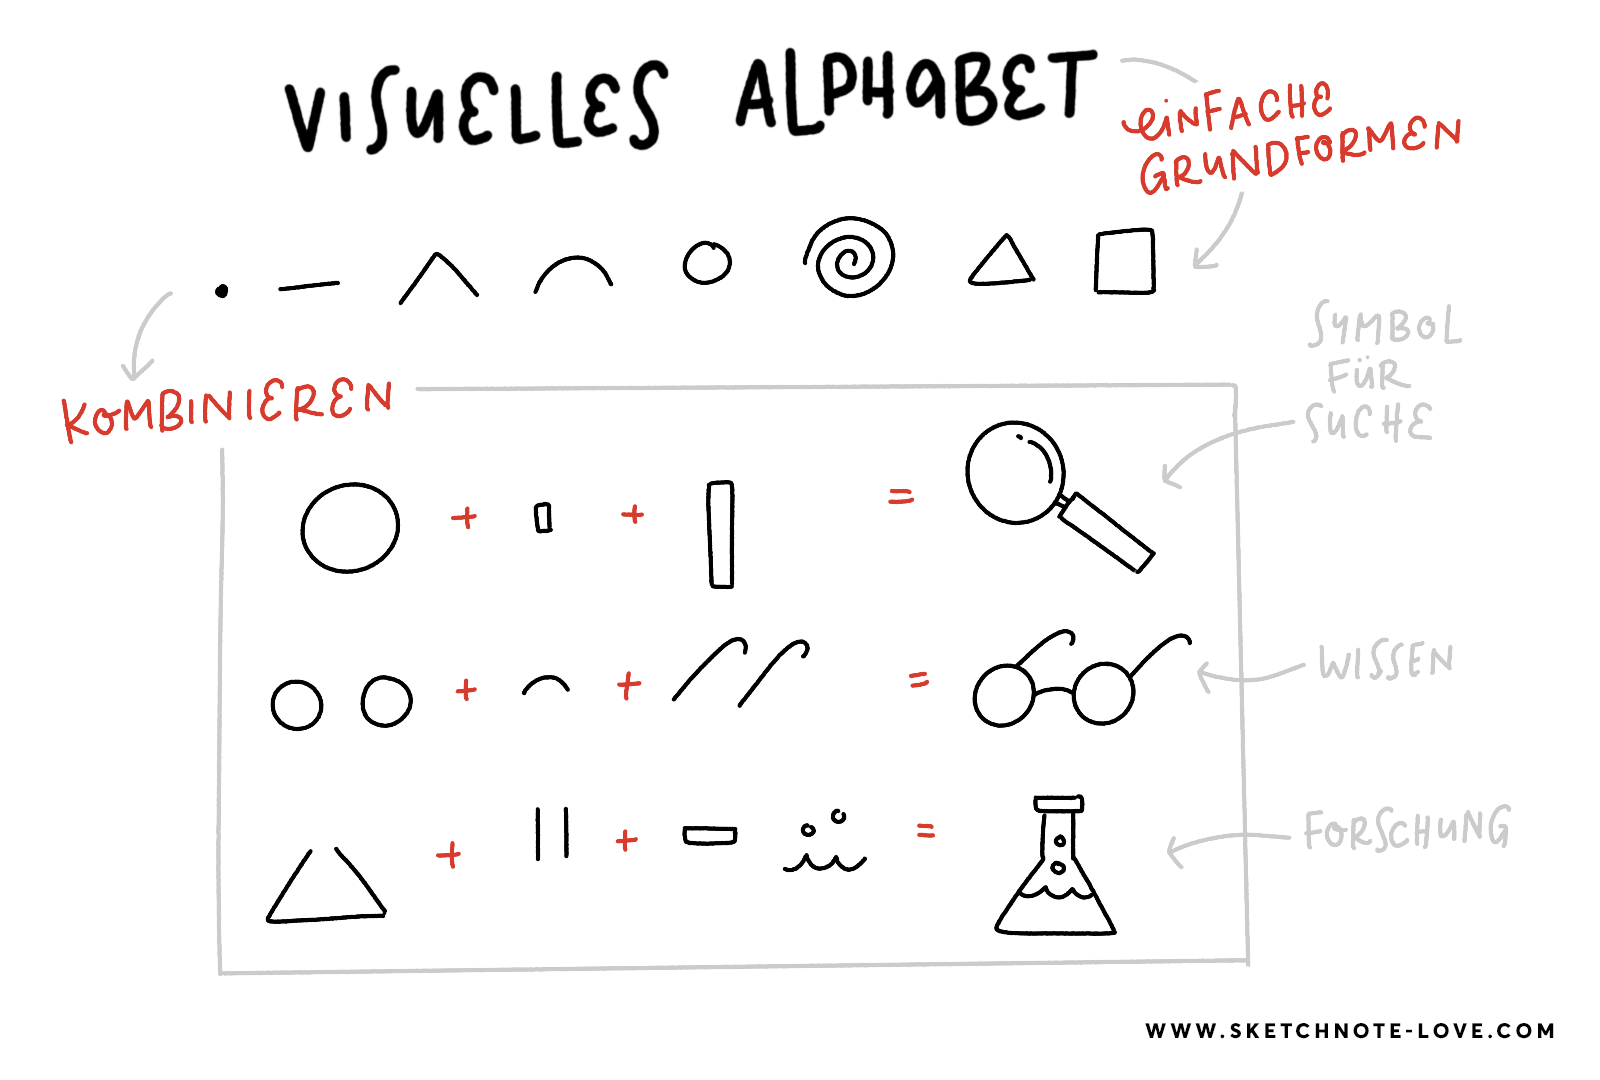 Visuelles Alphabet